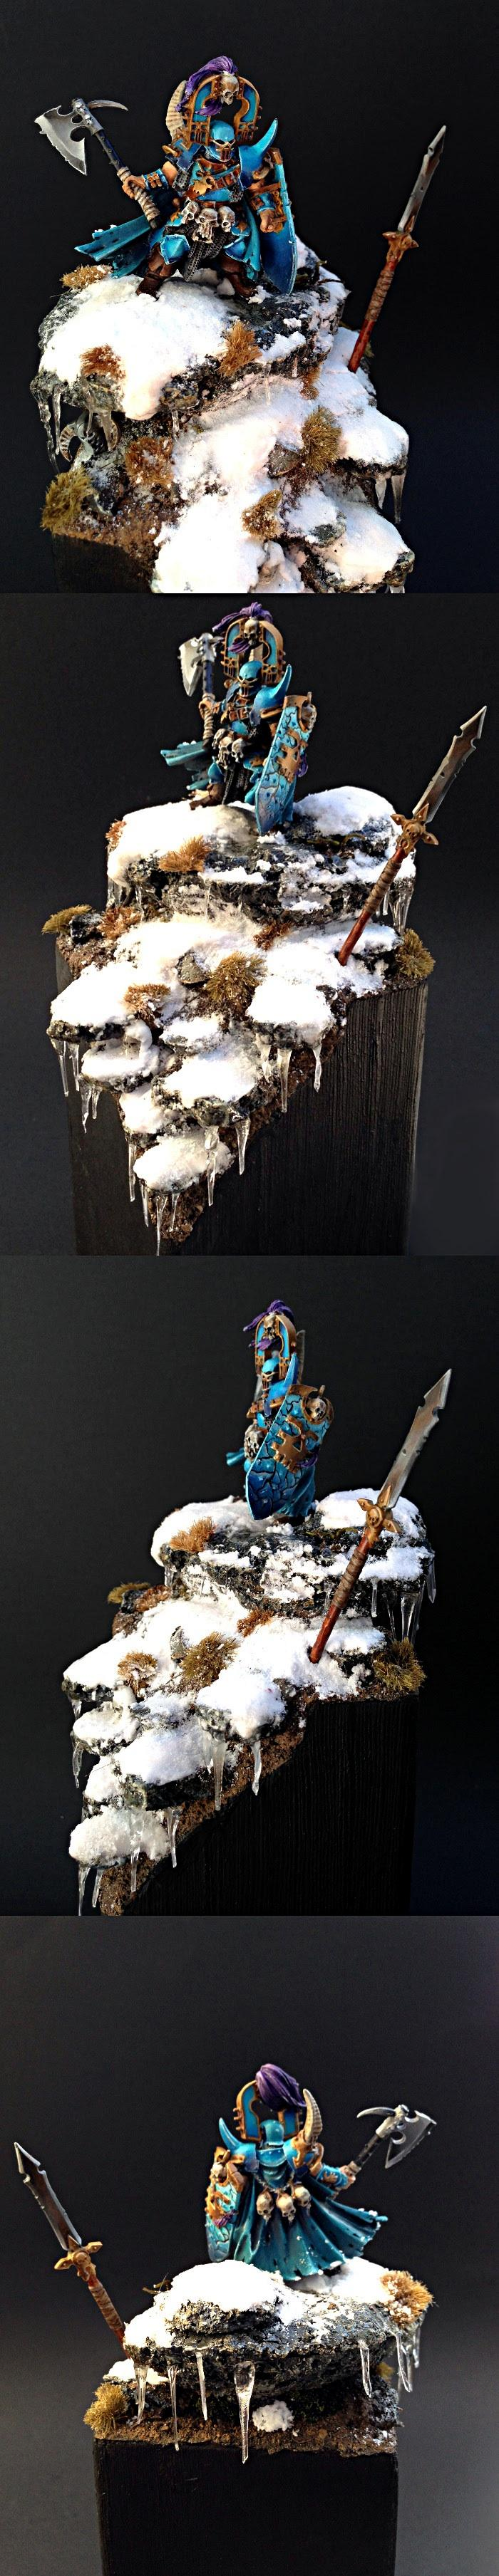 Blue, Chaos, Chaos Lord, Display, Freehand, Frozen, Khorne, Non-Metallic Metal, Snow